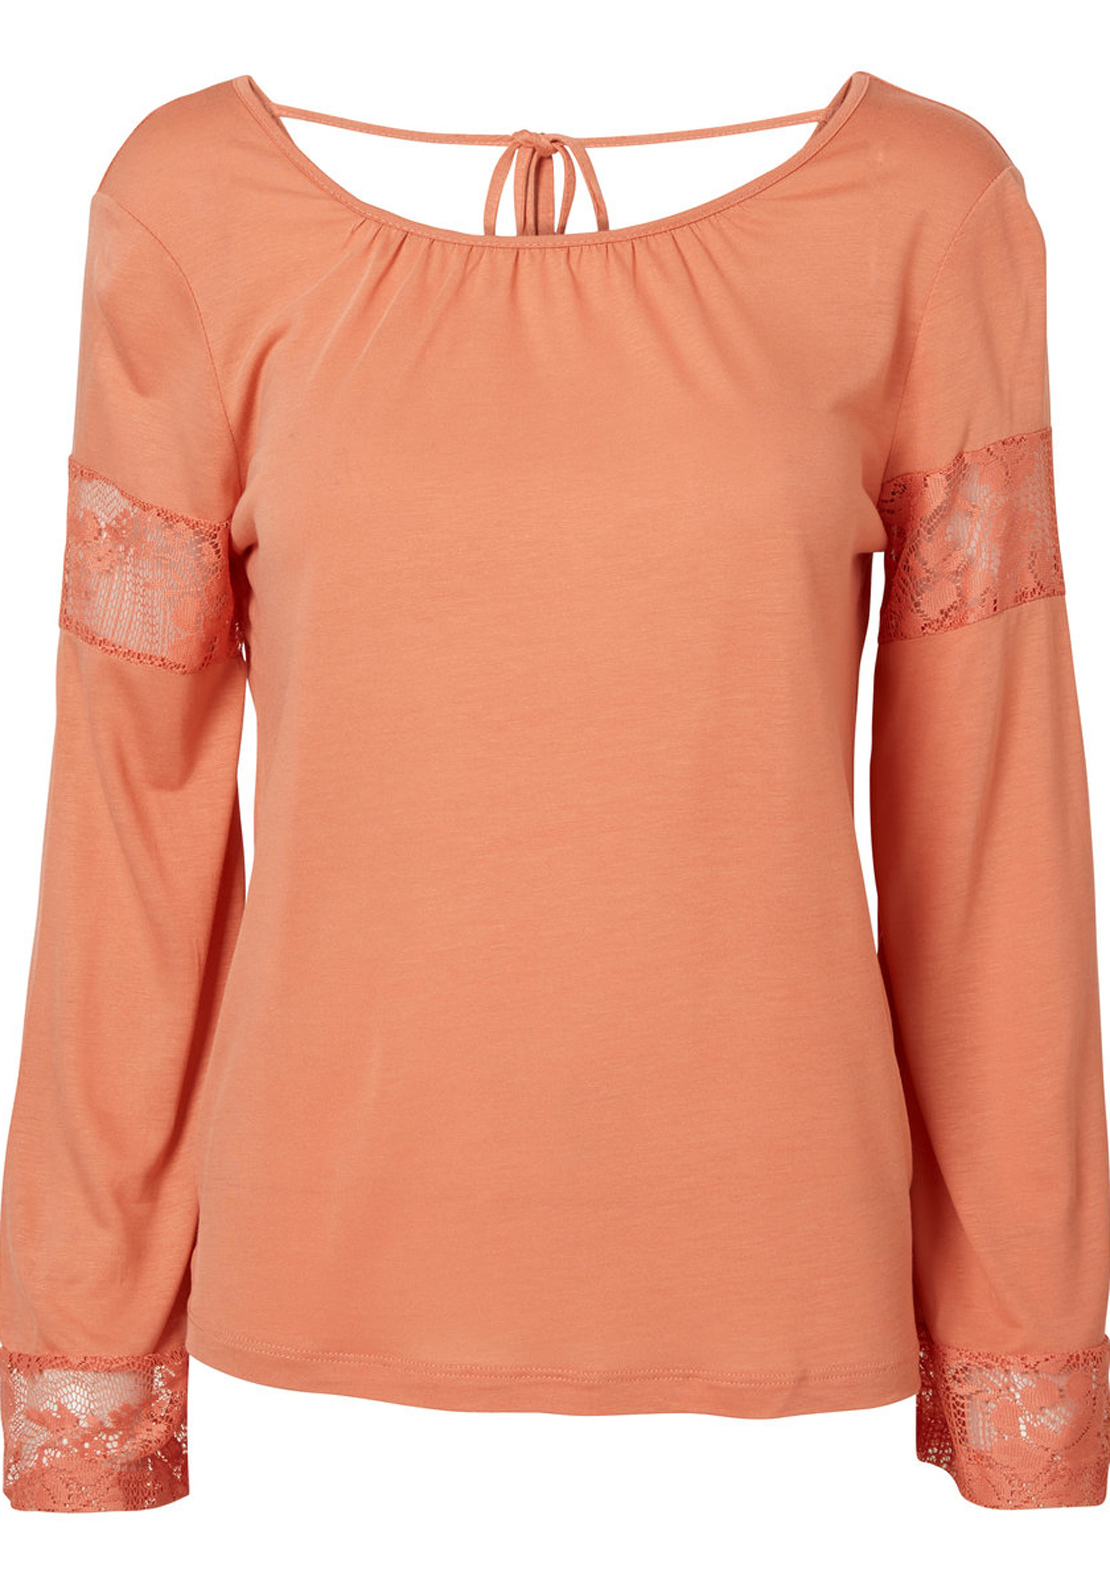 Vero Moda Cathrina Lace Trim Long Sleeve Top, Crabapple